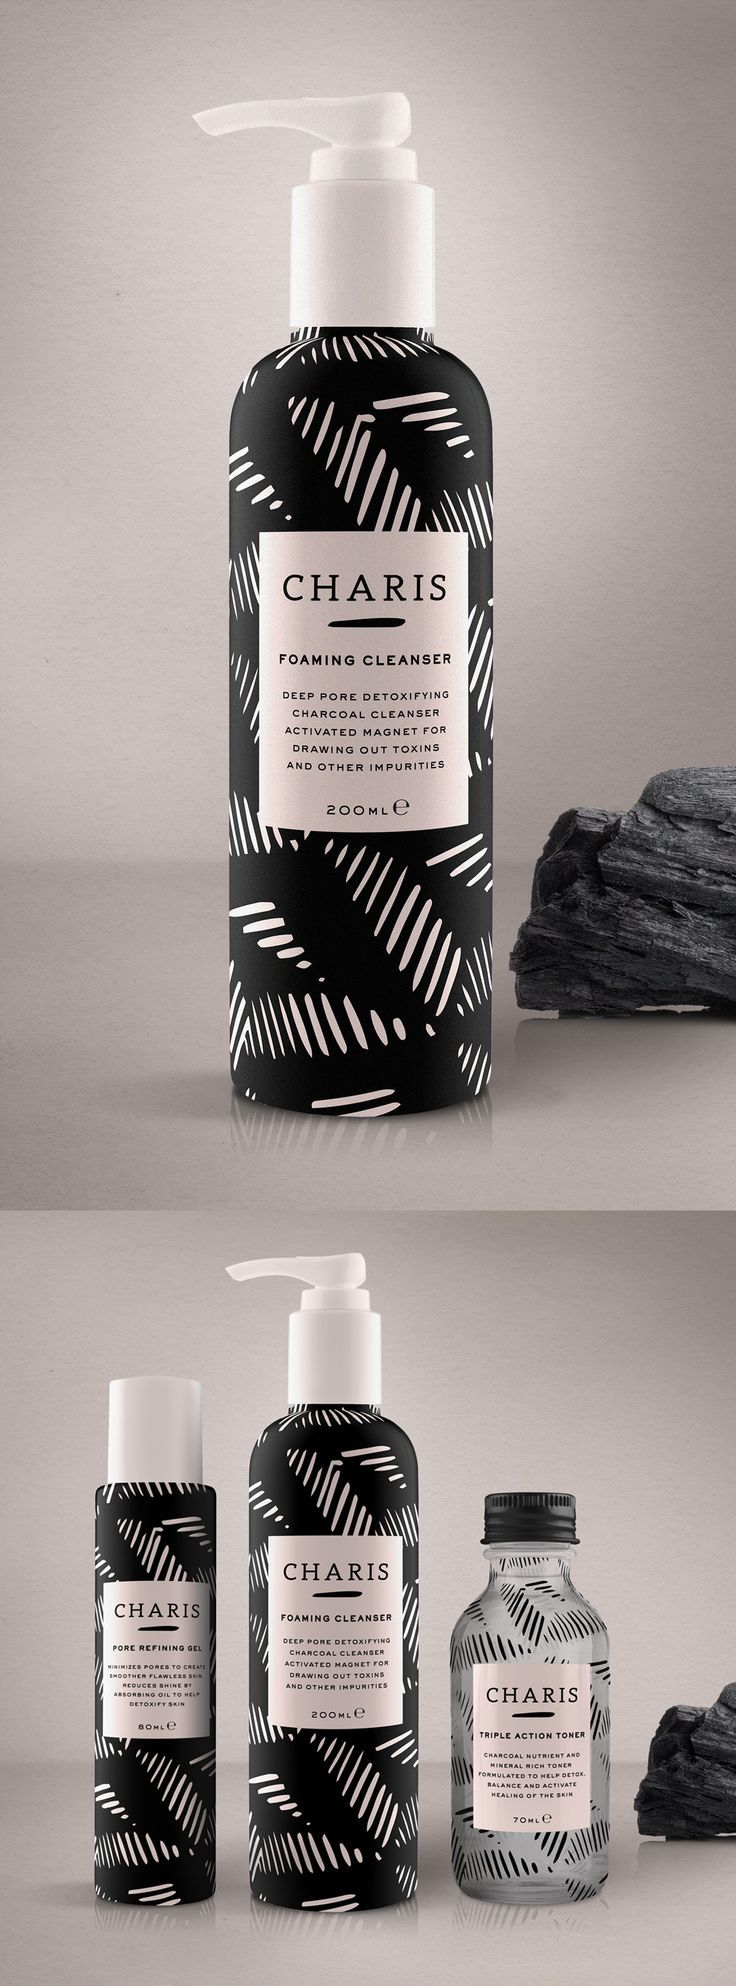 Beauty skincare brand and packaging design for 'Charis' created by design studio, Our Revolution